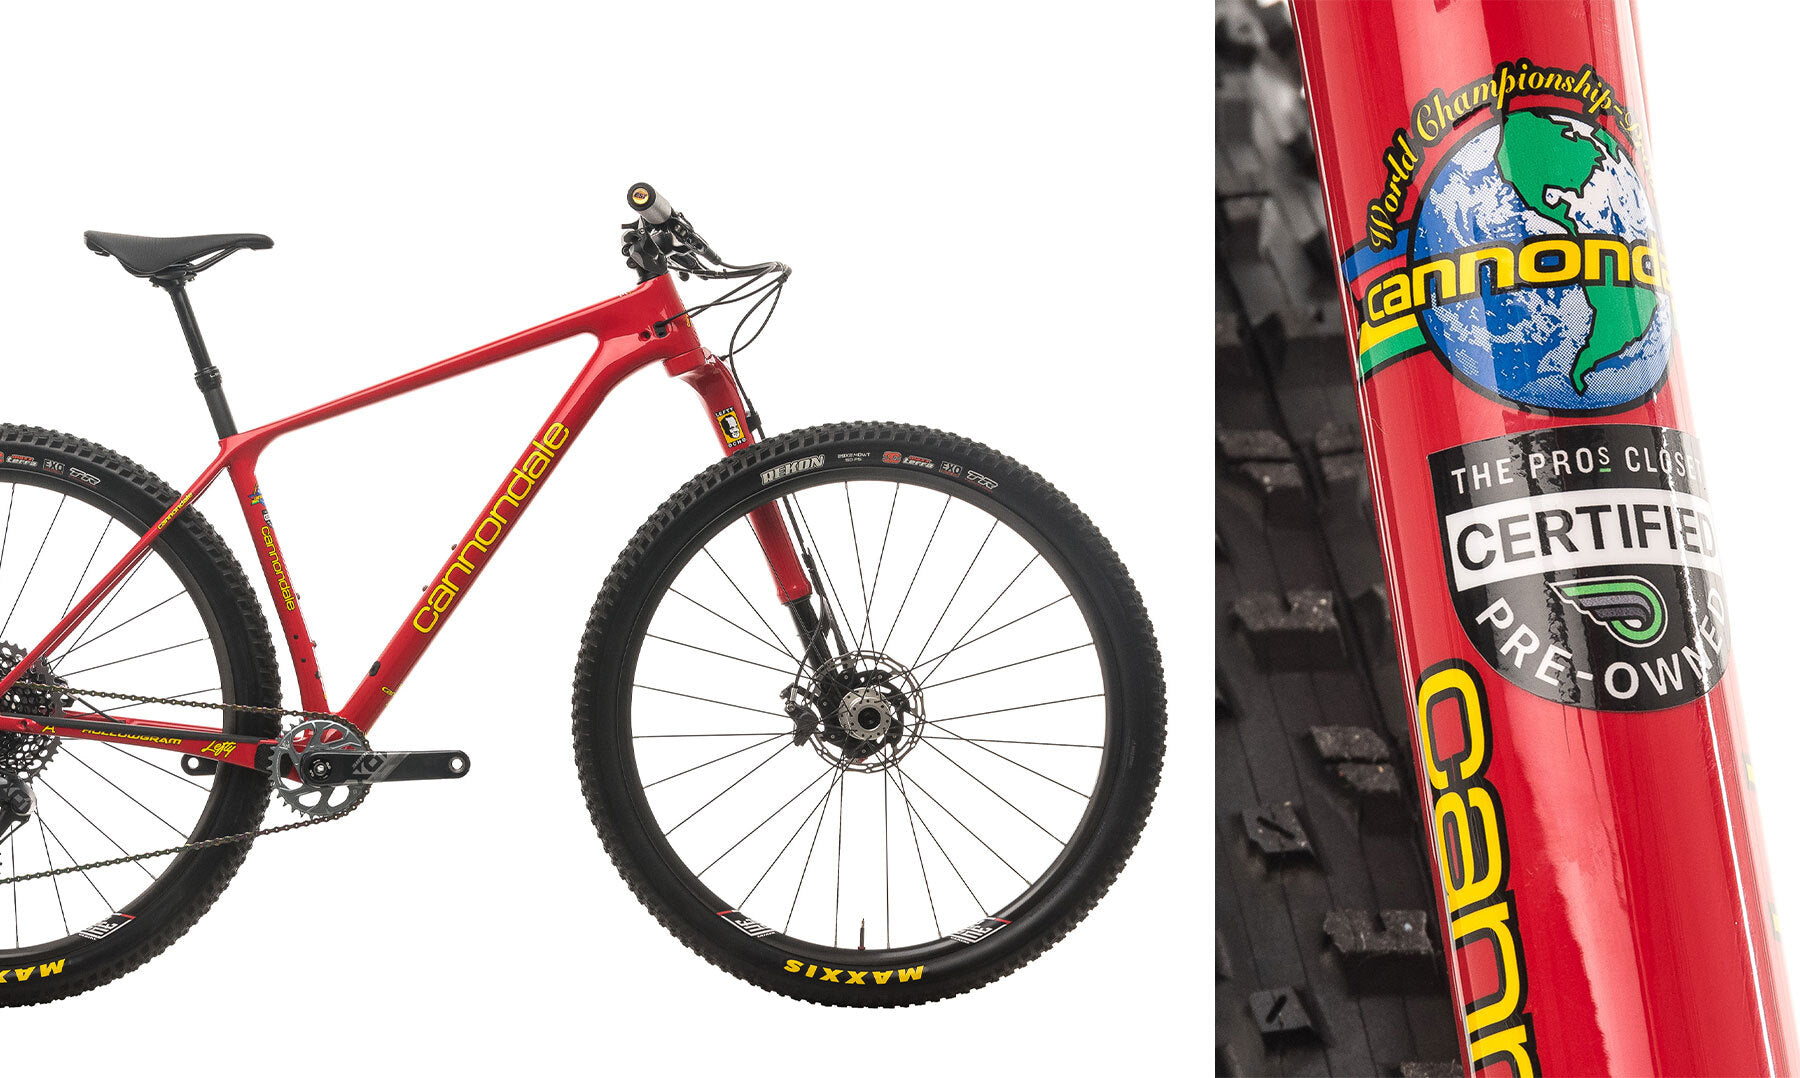 Cannondale viper red